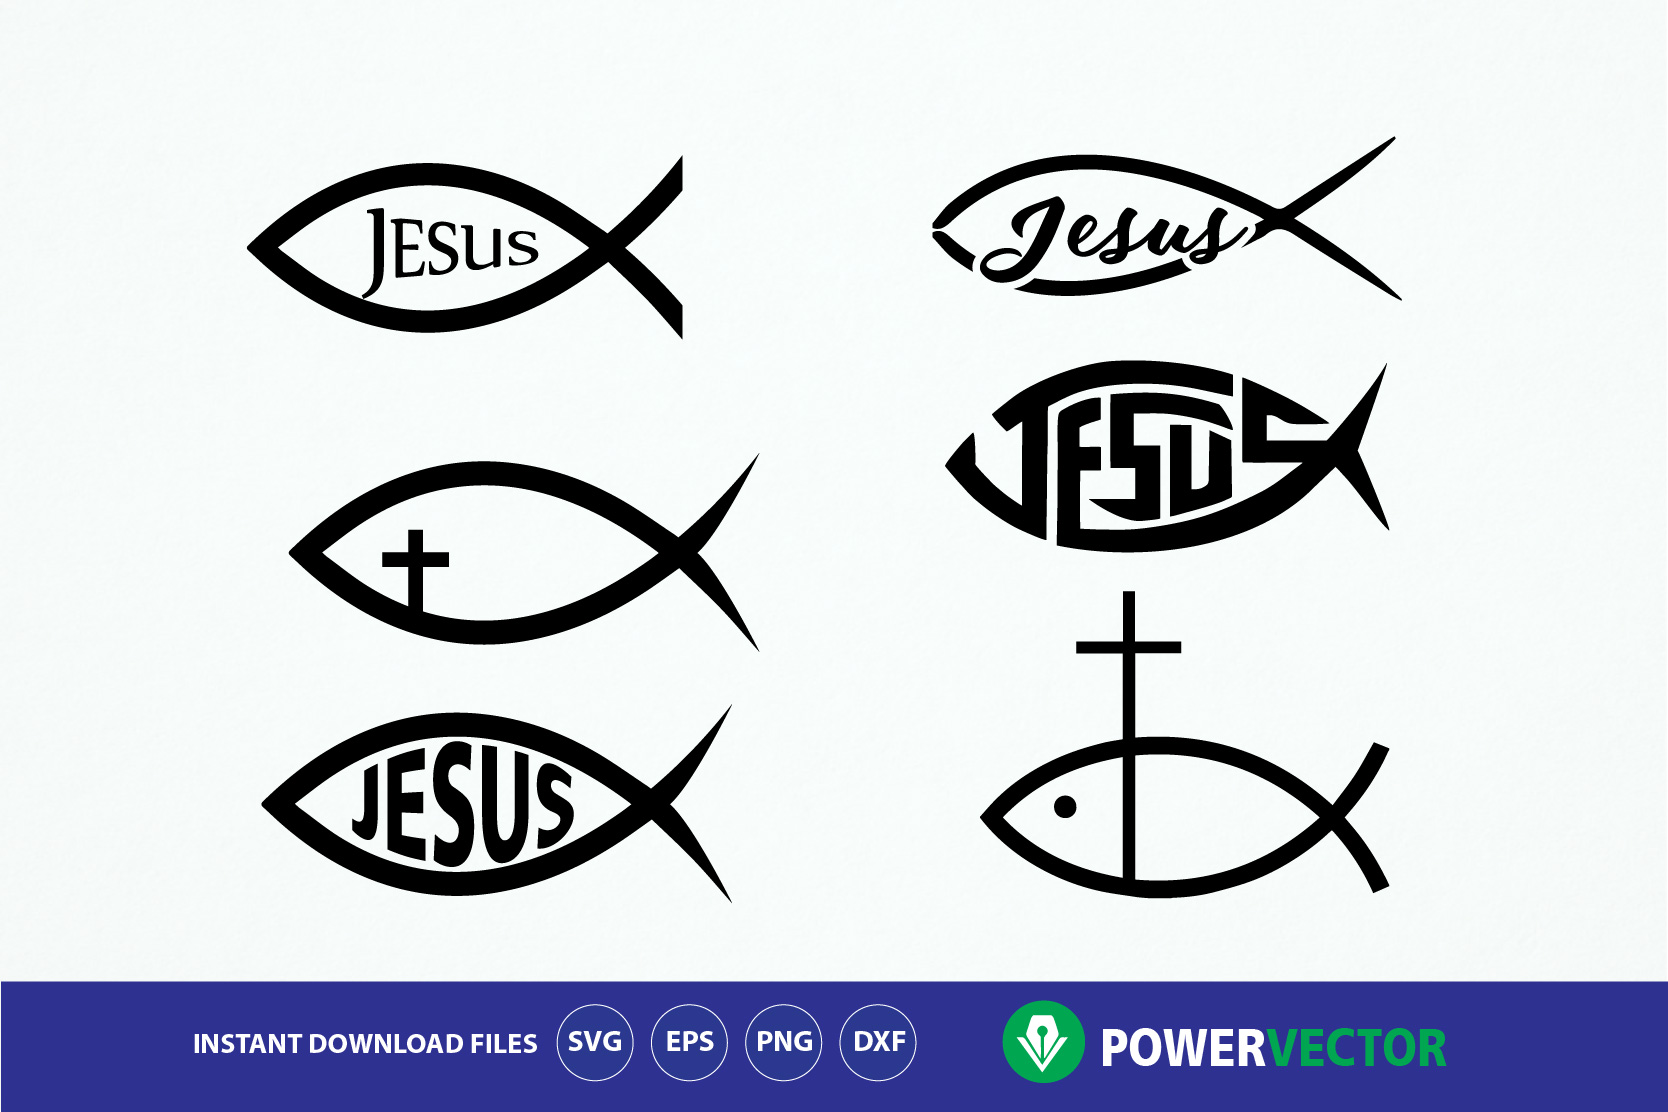 Fish Jesus Svg. Jesus Christ digital clipart - fish sign, God, Religious icon. Christian Fish Png, Eps, Dxf Cut Files for Cricut, Cameo example image 1